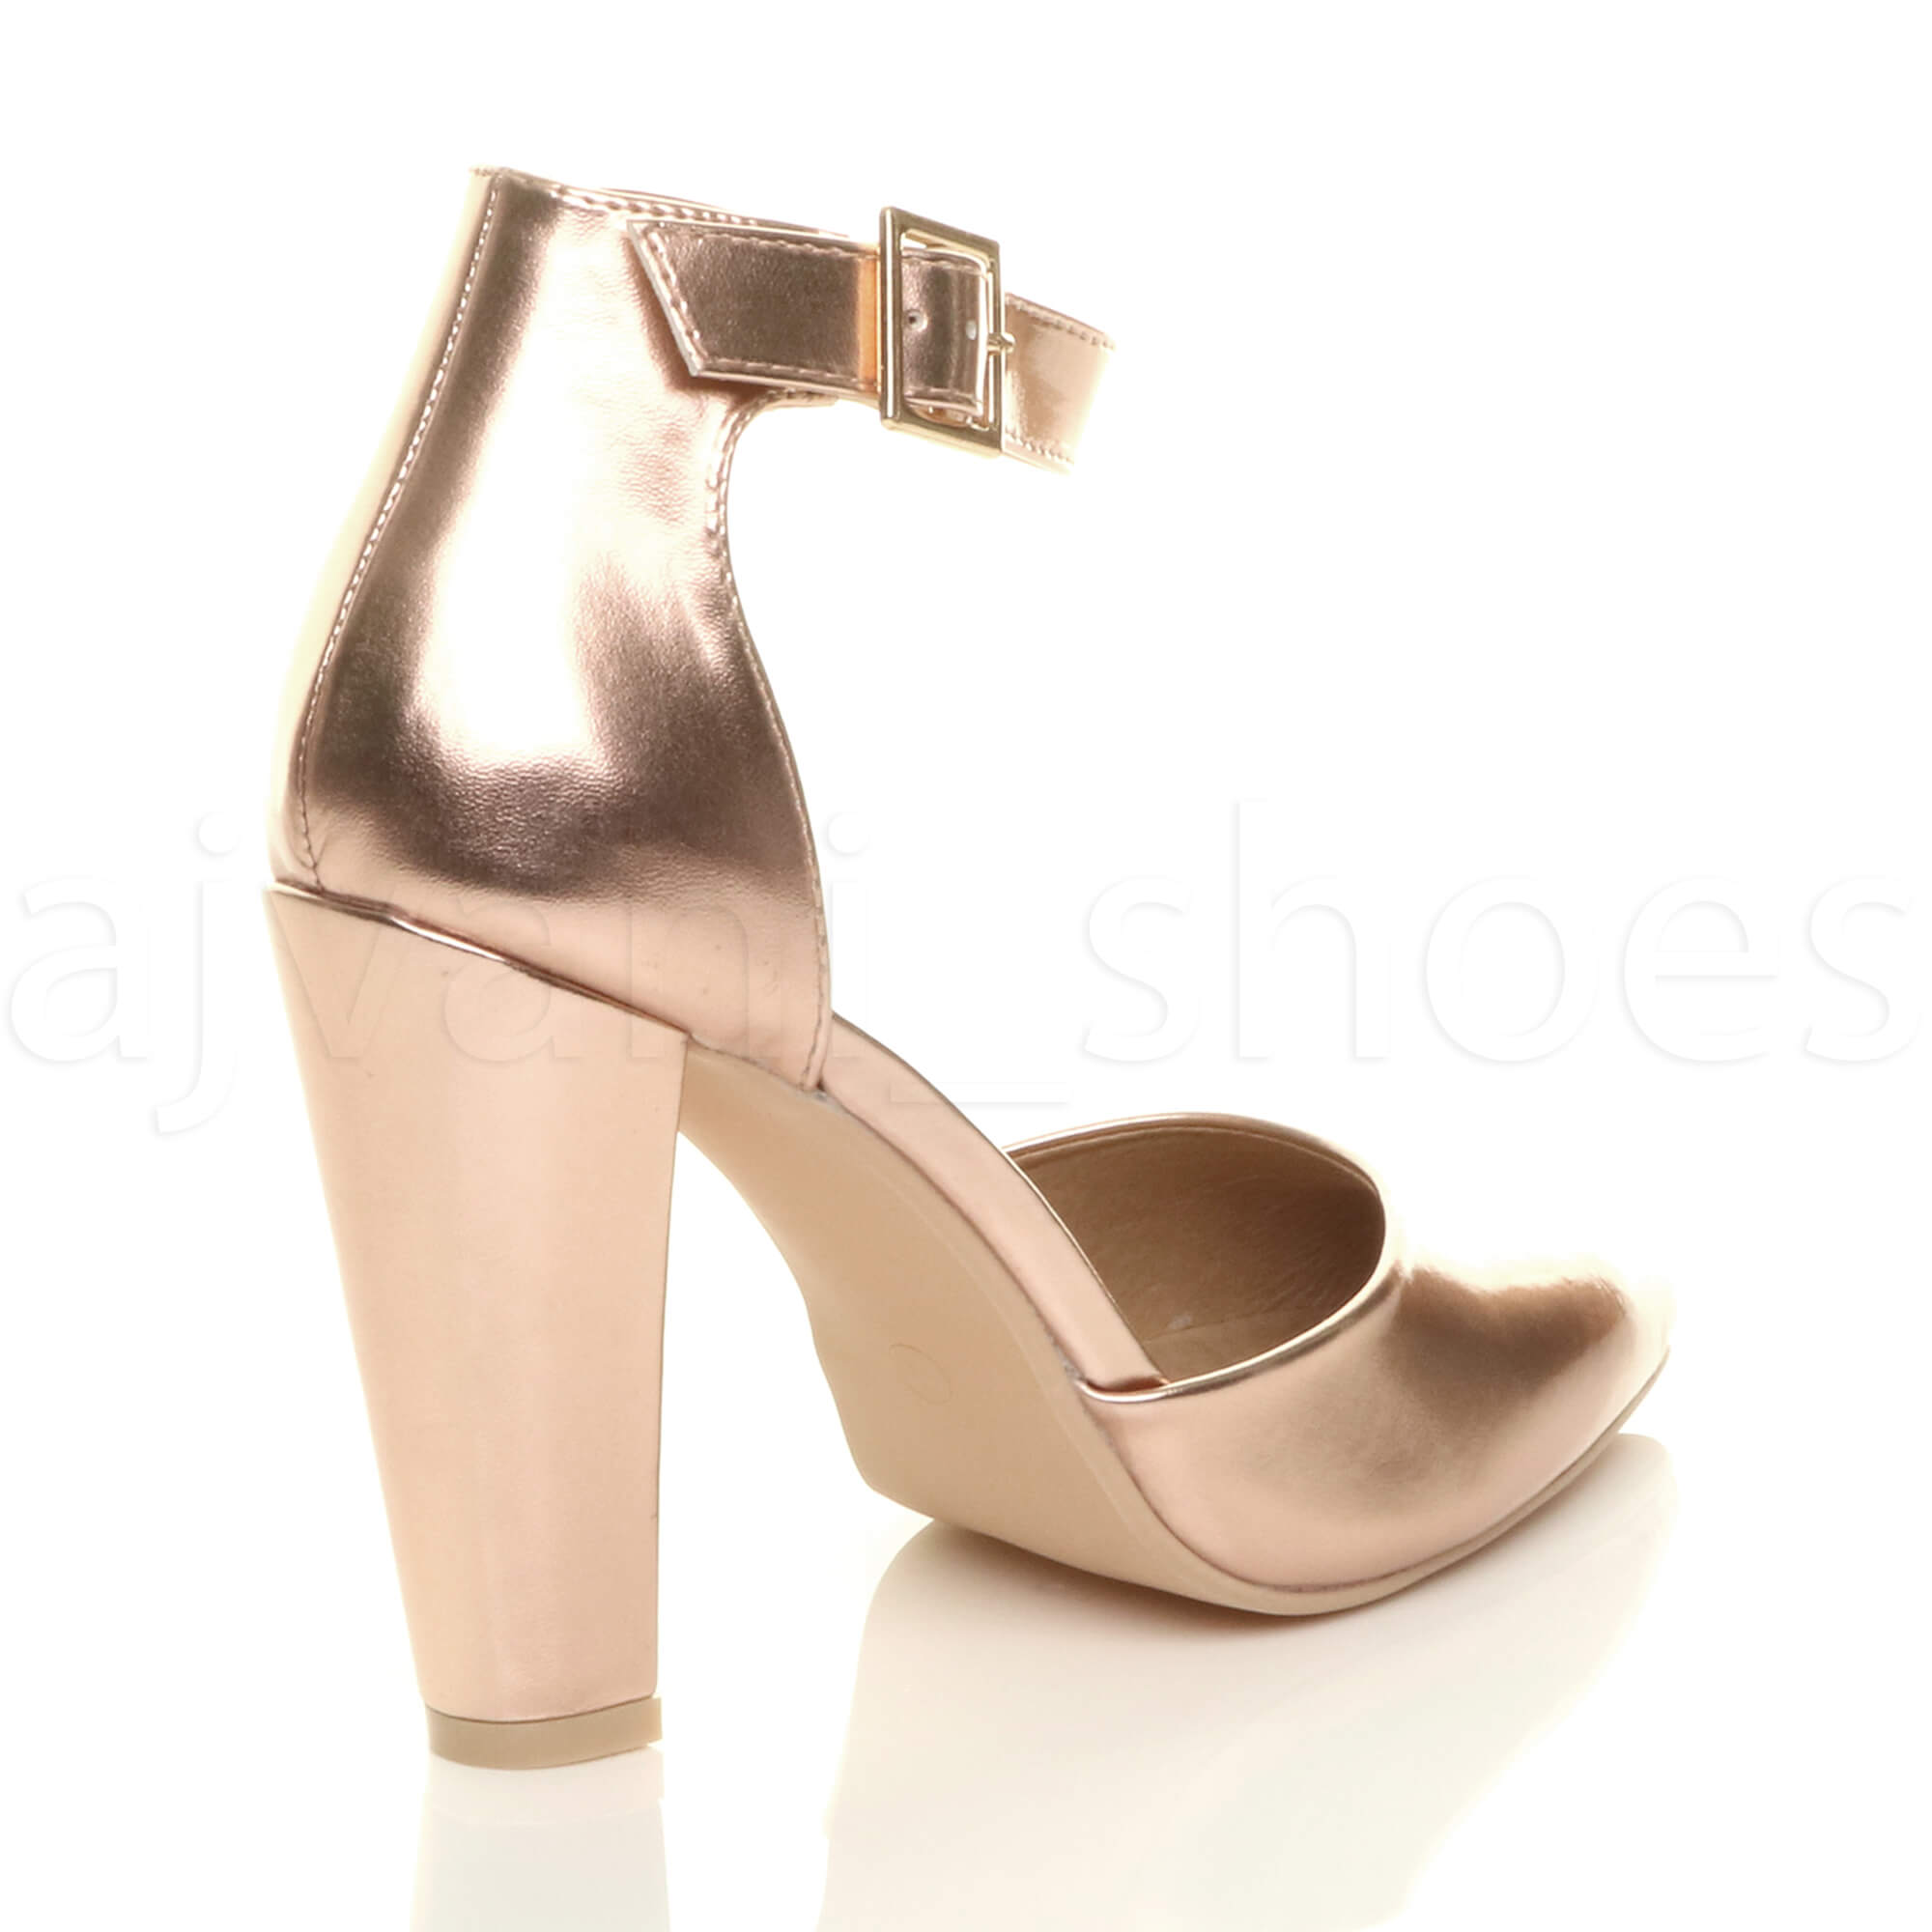 WOMENS-LADIES-HIGH-BLOCK-HEEL-ANKLE-STRAP-BUCKLE-POINTED-COURT-SHOES-SIZE thumbnail 145